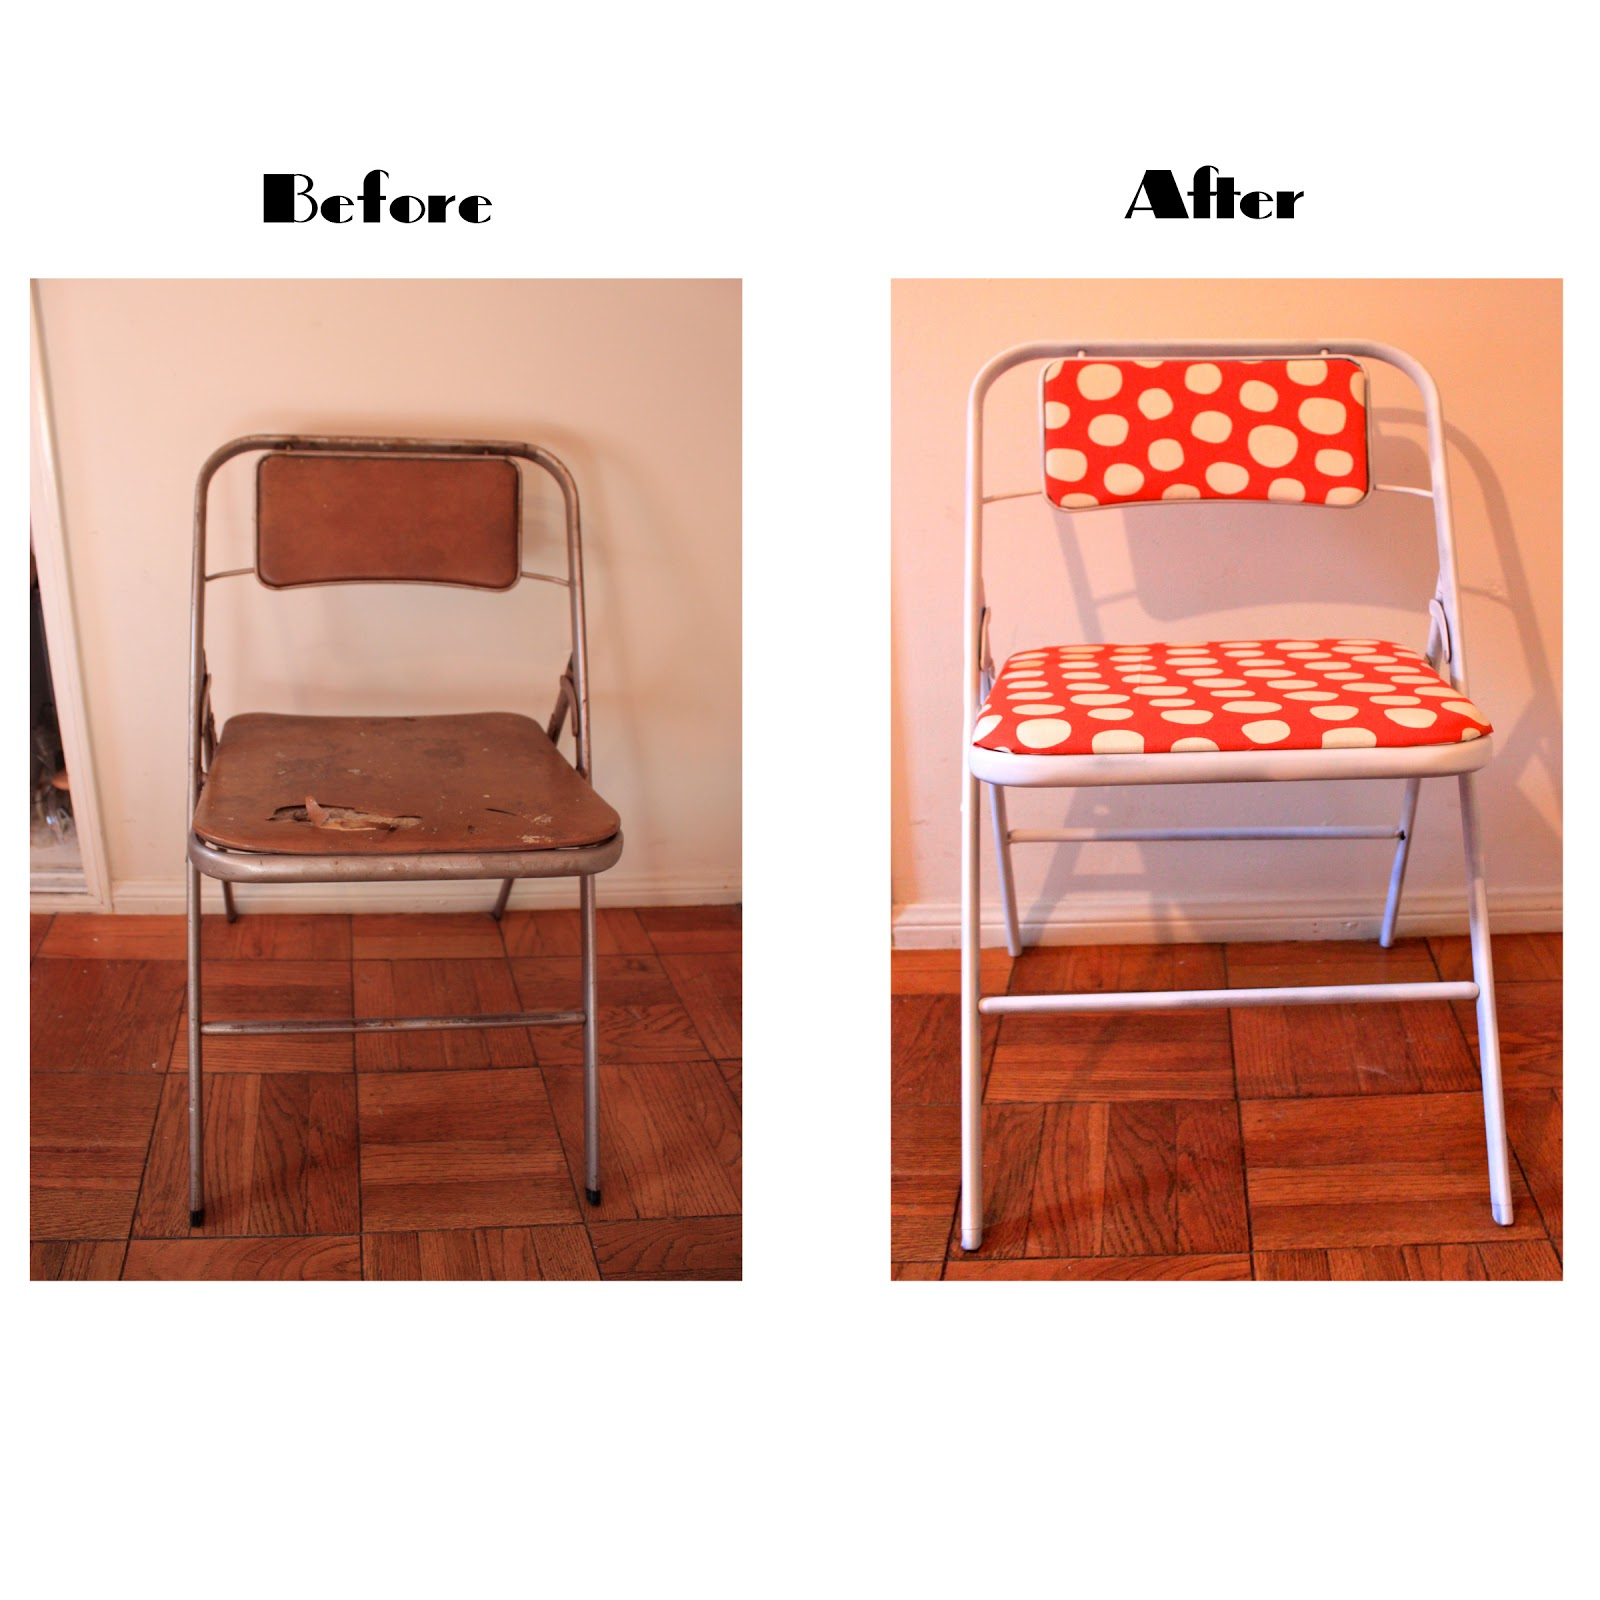 Vintage Samsonite Folding Chairs Get A Makeover Queen B